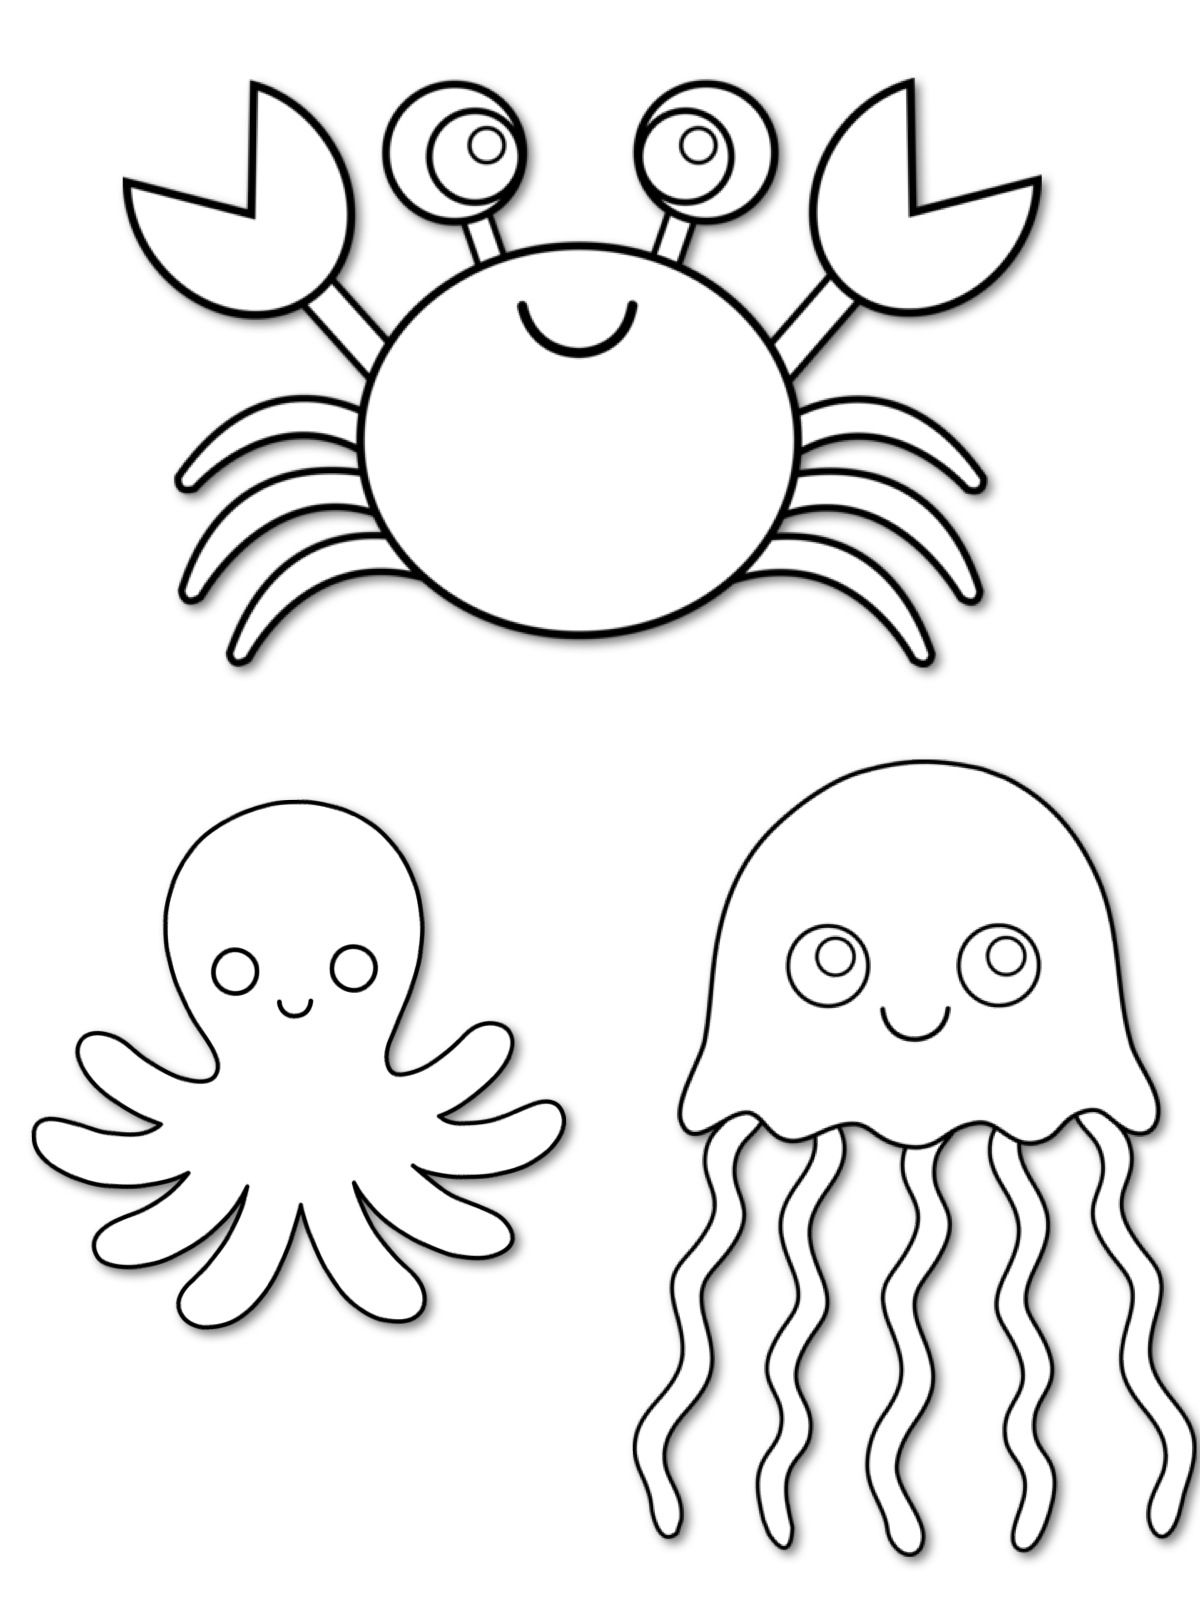 Sea creatures Coloring pages & Basic patterns/templates